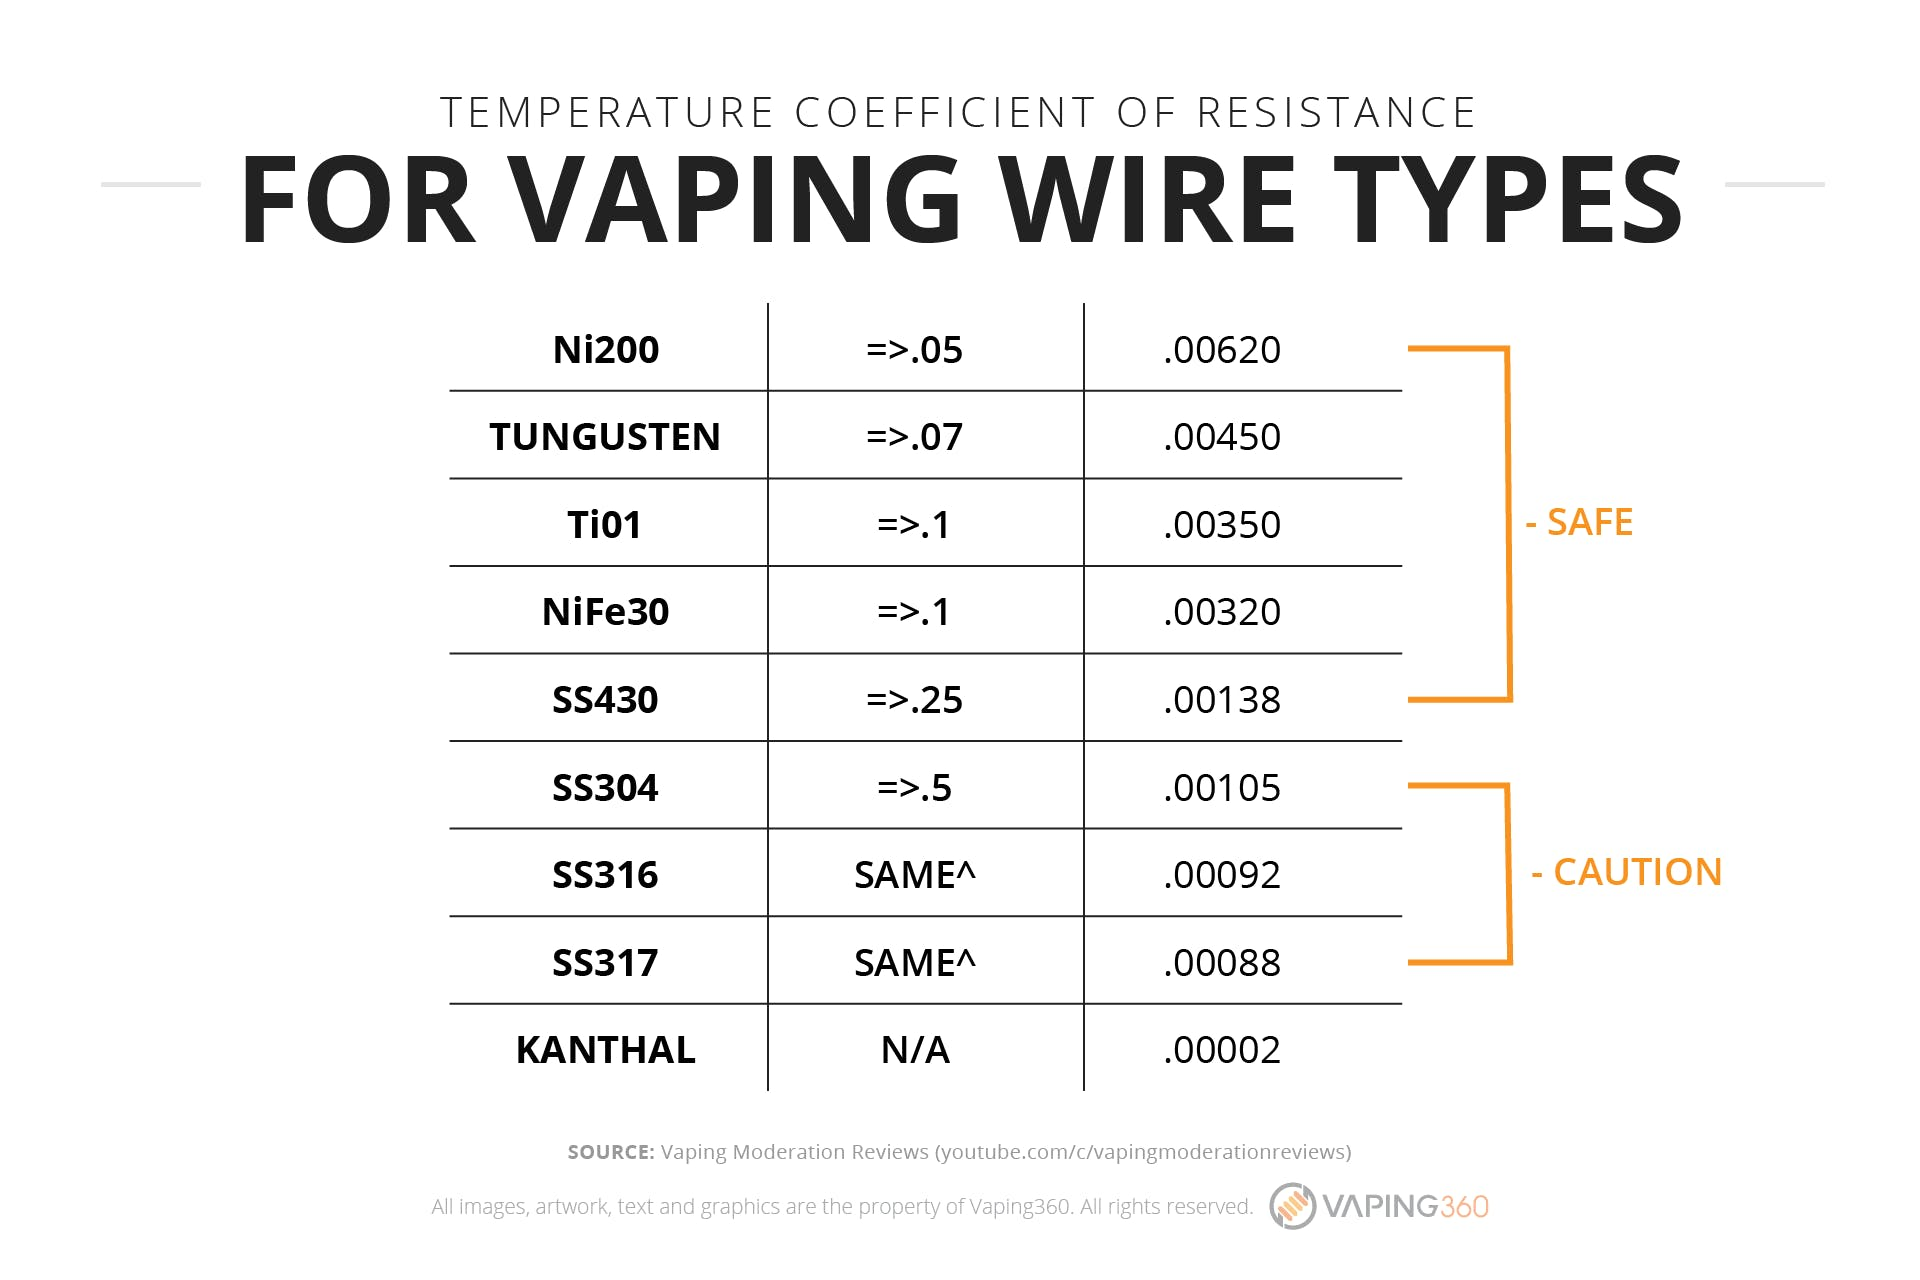 A beginners guide to vaping with temperature control 2018 temperature coefficient of resistance for vaping wire types infographic greentooth Choice Image